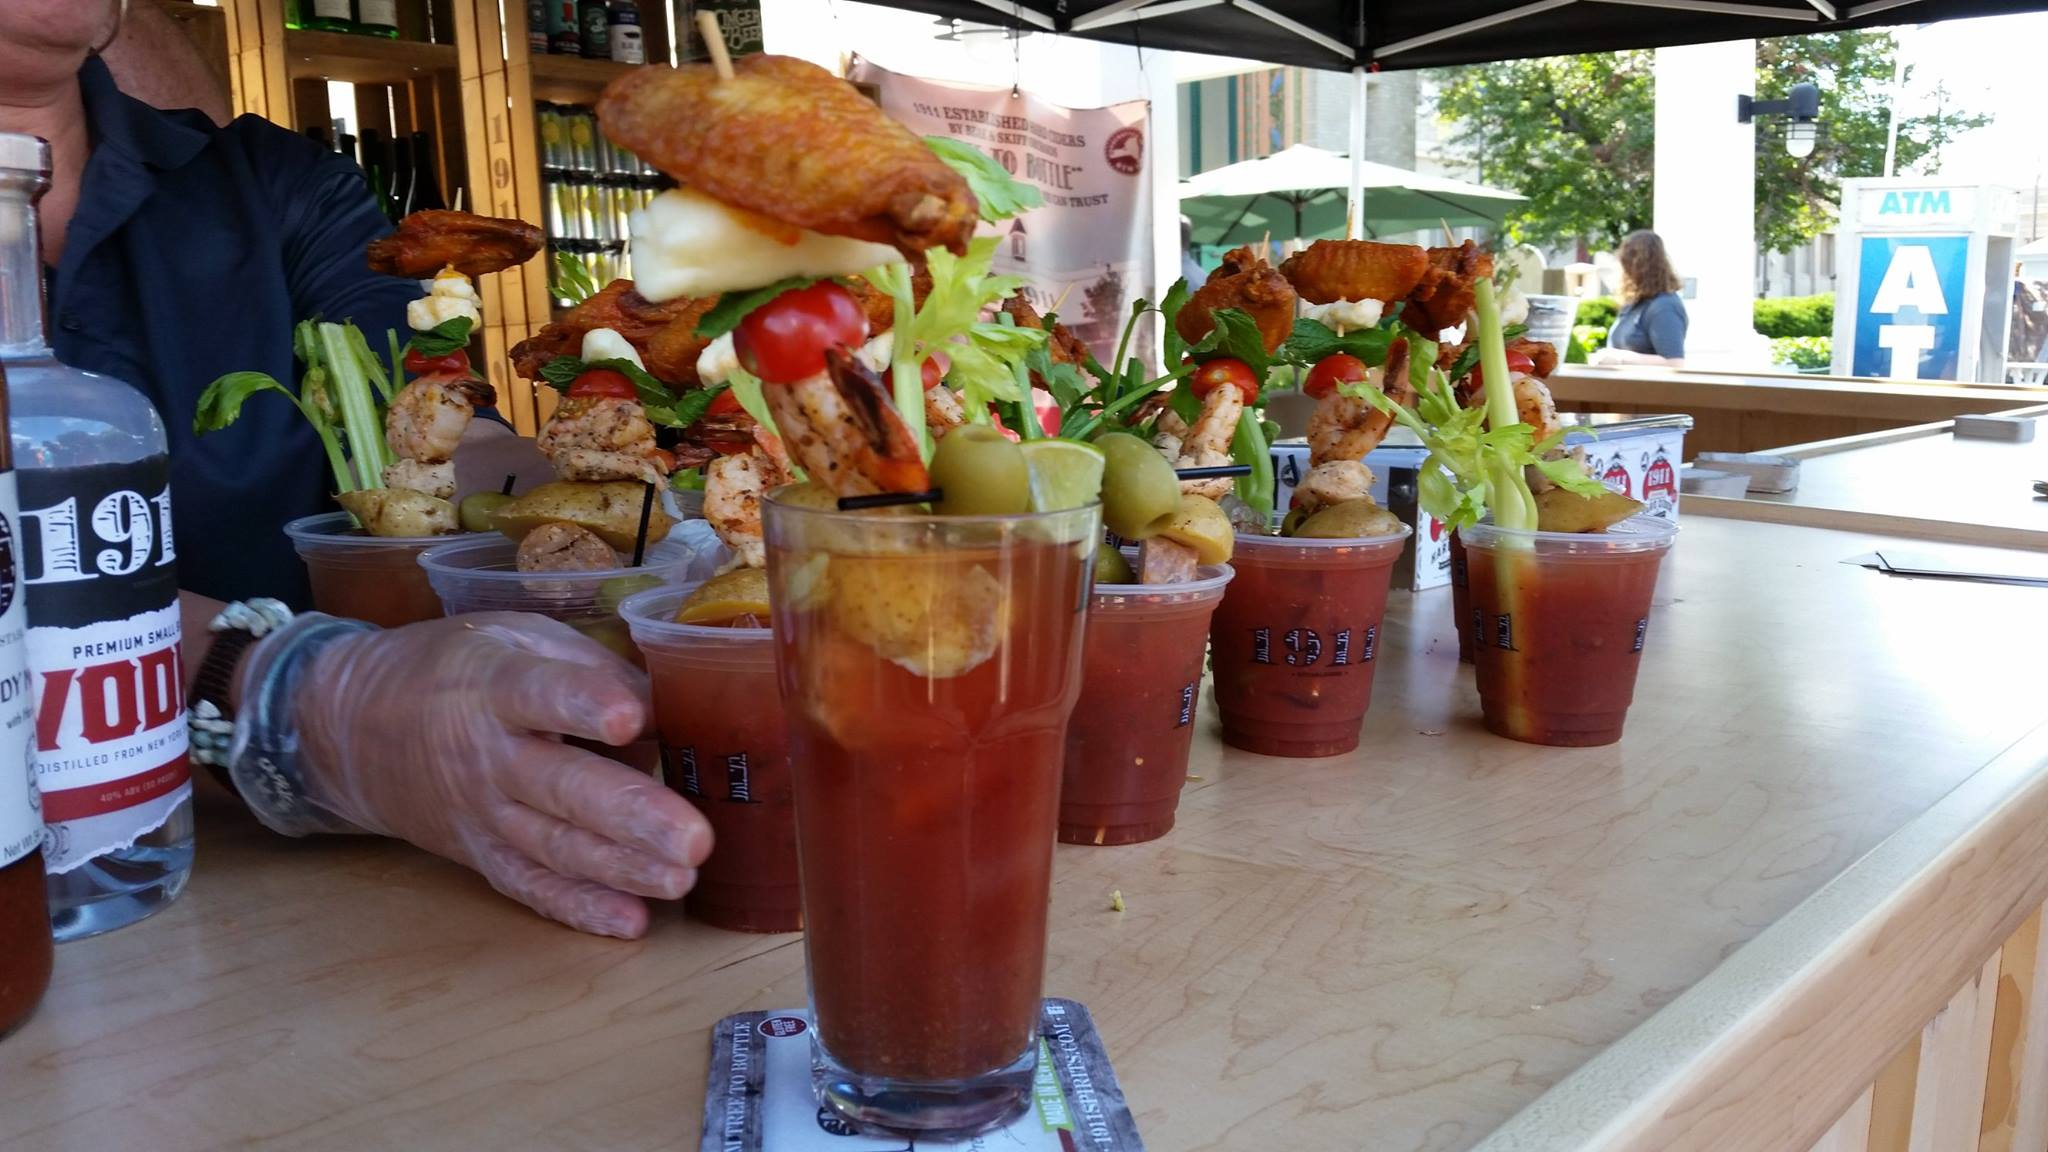 State Fair bloody marys